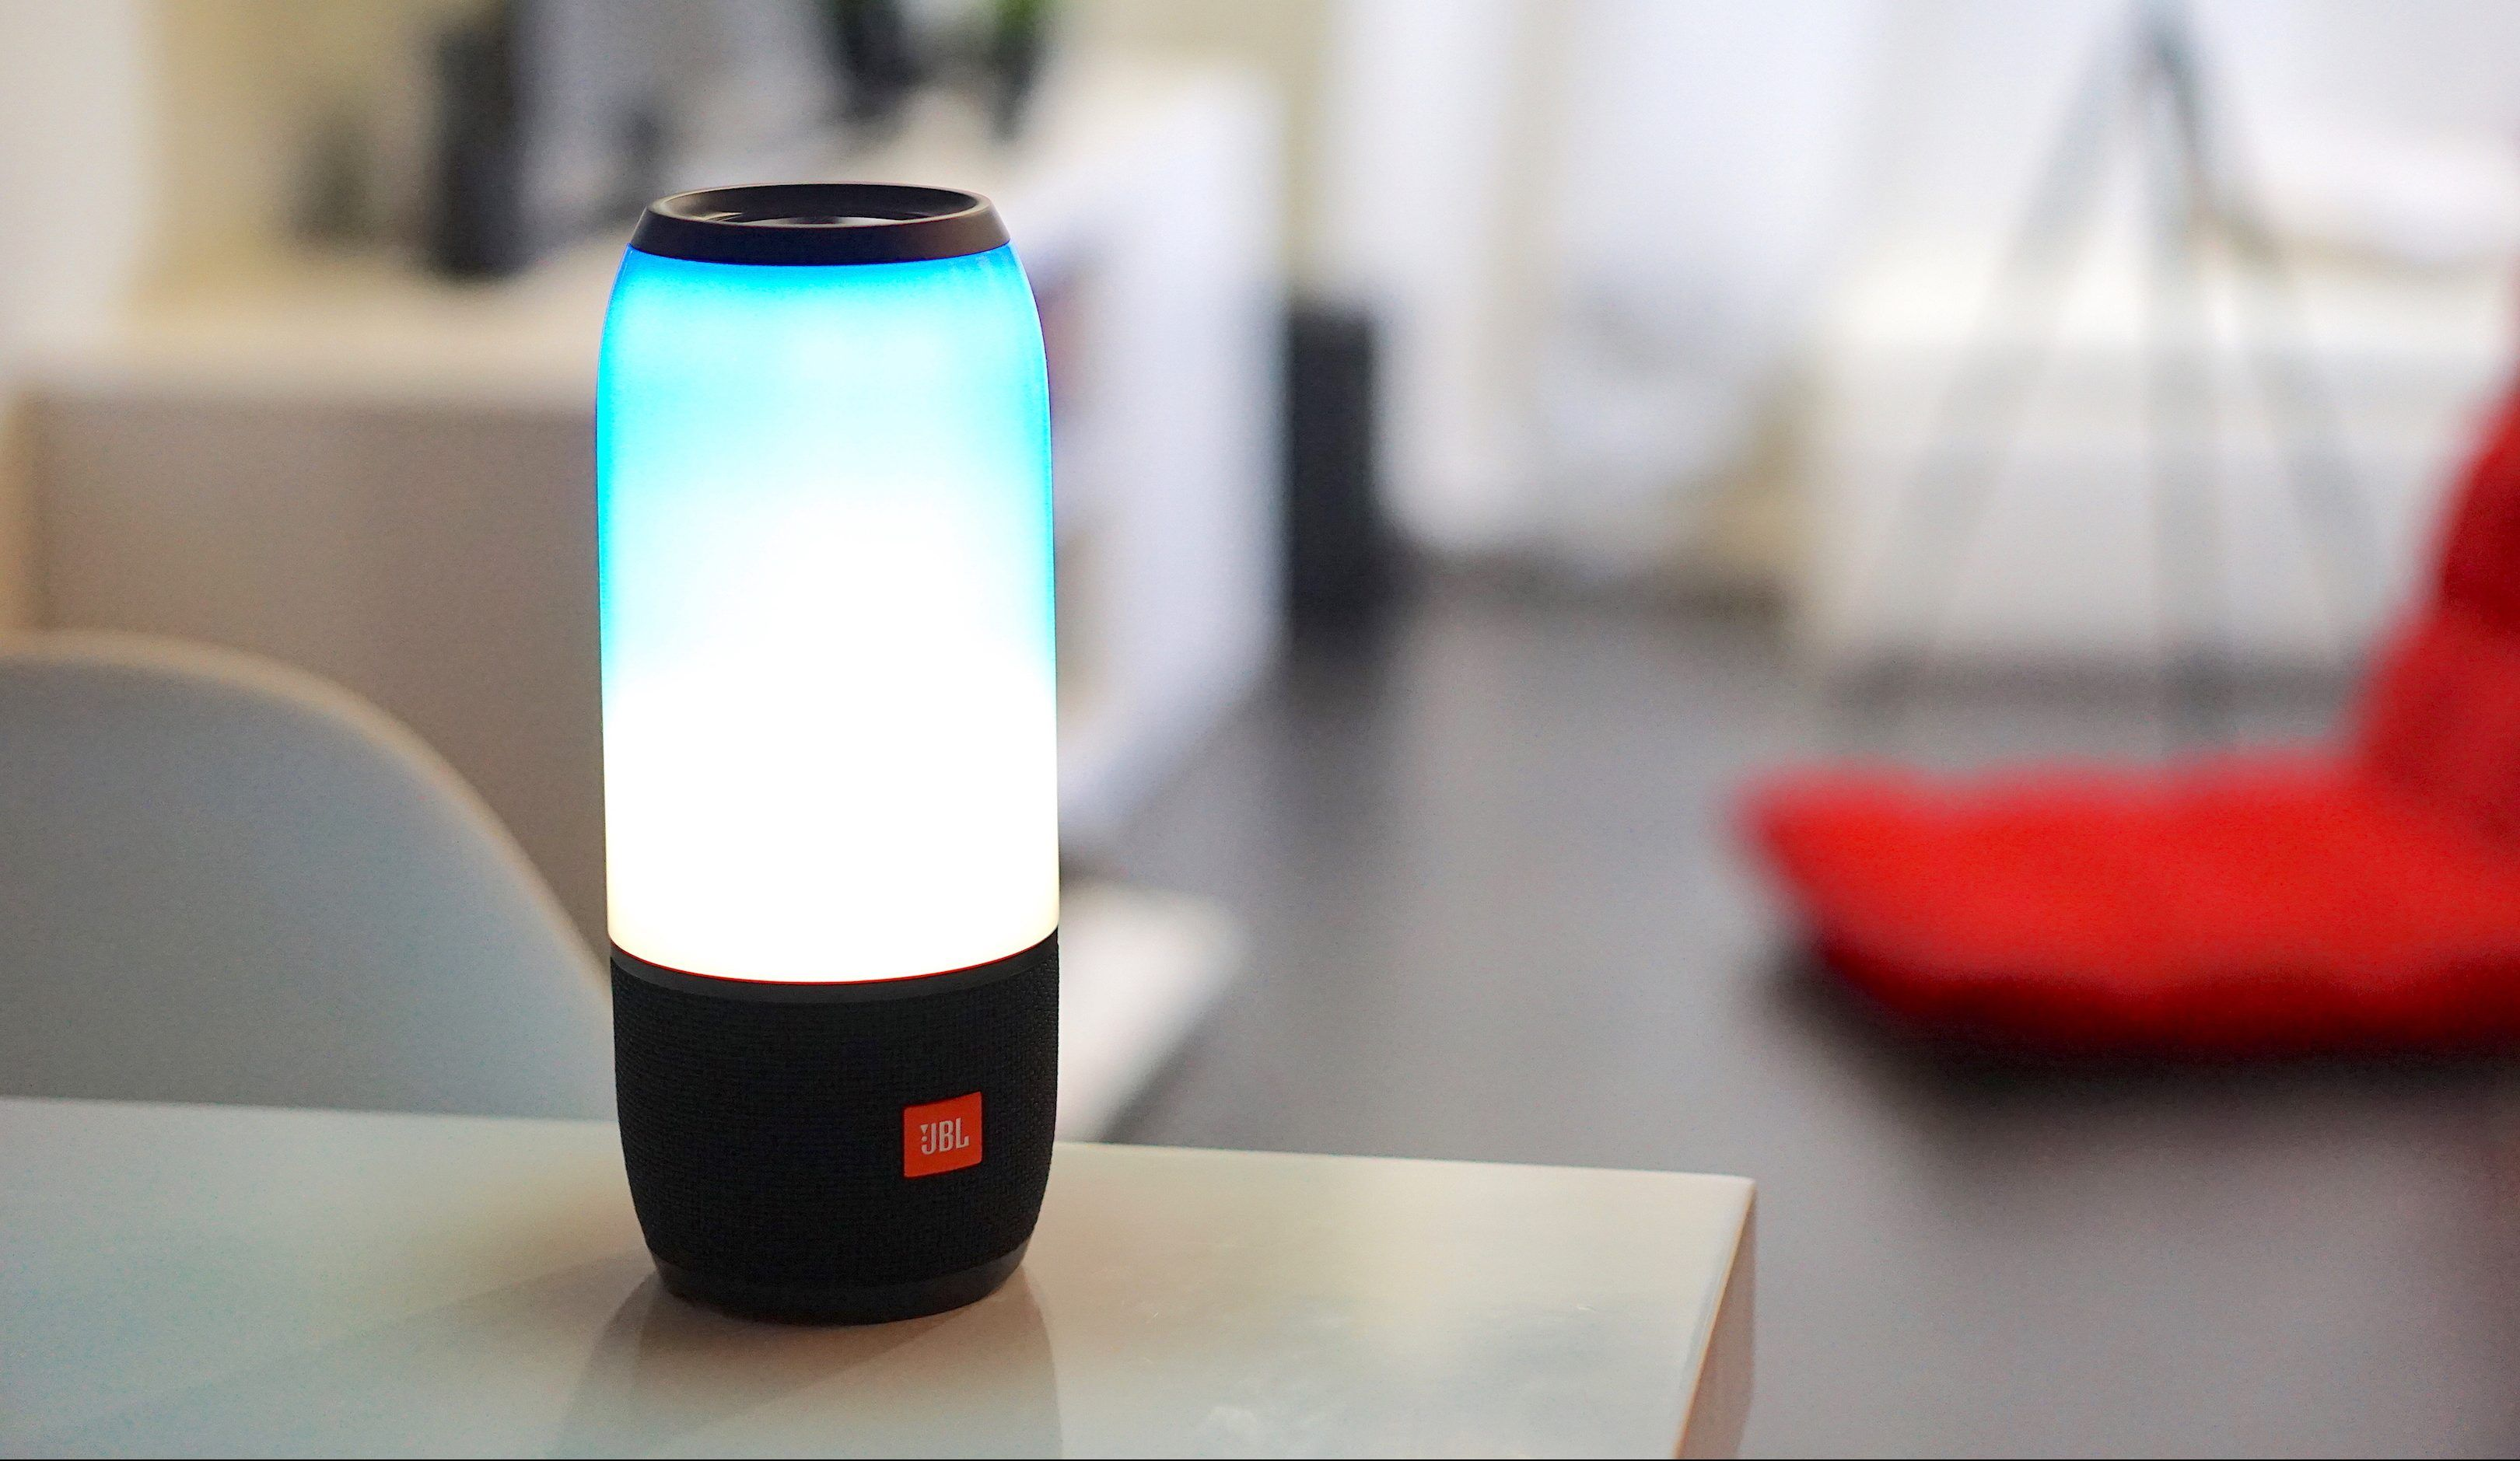 Lava Lamp Bluetooth Speaker Glamorous Review  Jbl Pulse 3 Speaker The Lava Lamp That Sings  Http Design Decoration